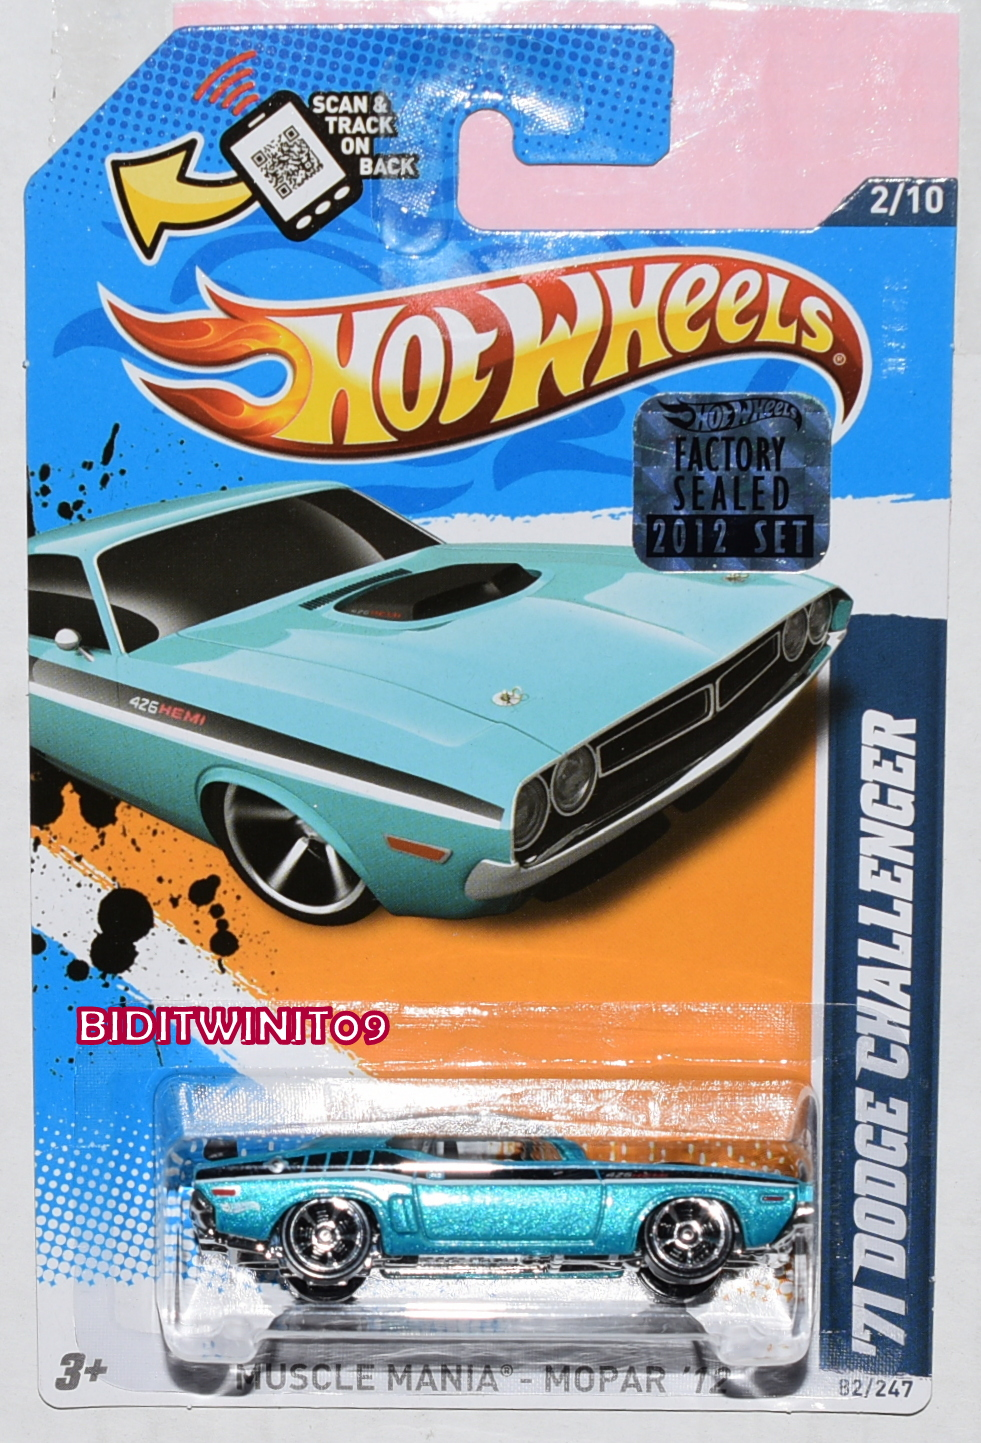 HOT WHEELS 2012 MUSCLE MANIA '71 DODGE CHALLENGER TURQUOISE FACTORY SEALED